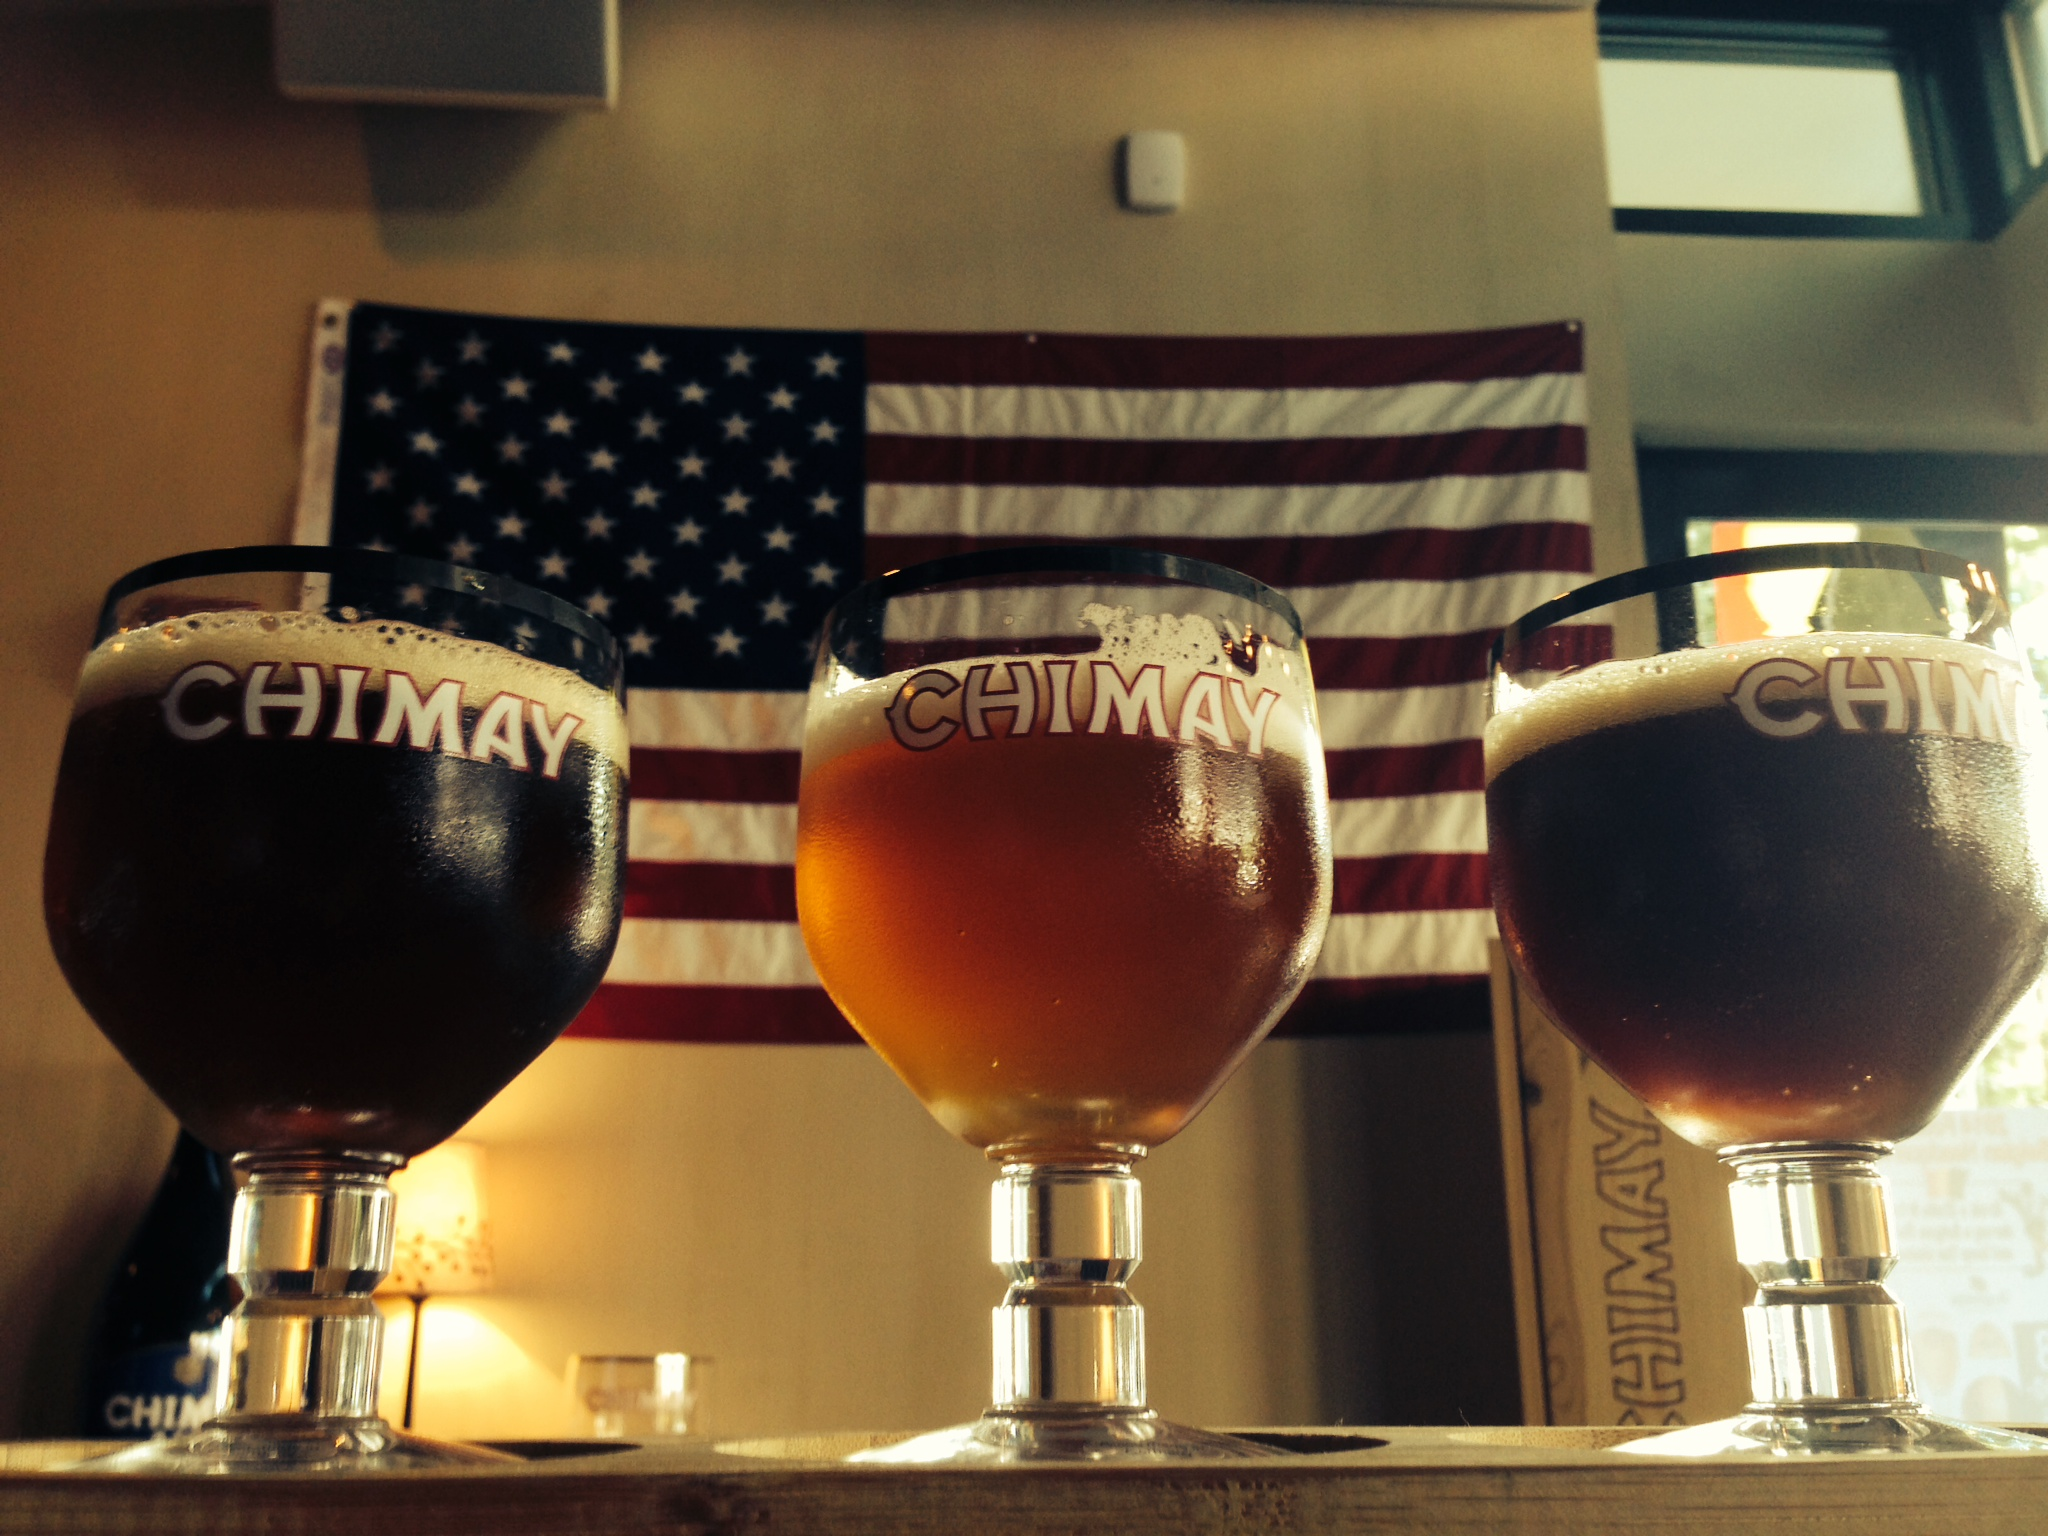 The red, white and blue Chimay beer flight being offered at Belga Cafe and B Too. (Photo: Belga Cafe/B Too)